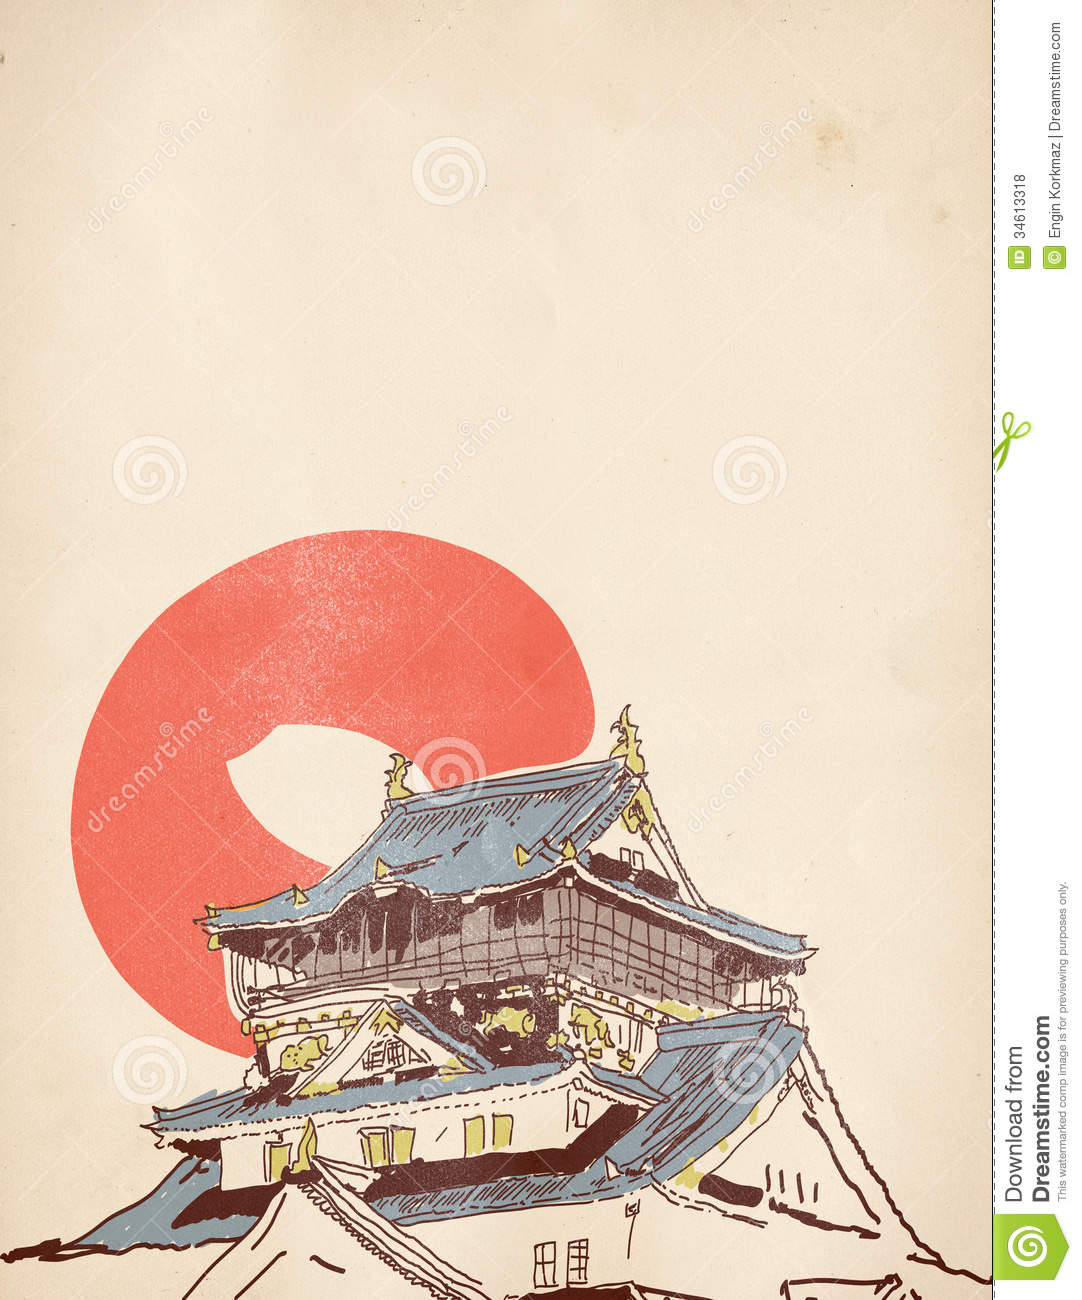 japanese house design plans with Royalty Free Stock Photos Japanese House Drawing Vector Sketch Traditional Old Paper Background Image34613318 on Draw Autocad 2d House Plan in addition Guide To Japanese Apartments Floor Plans Photos And Kanji Keywords furthermore Obliteration Room Yayoi Kusama furthermore Utah Modern Homes For Sale Dark Walnut Makes It furthermore Zen Garden.